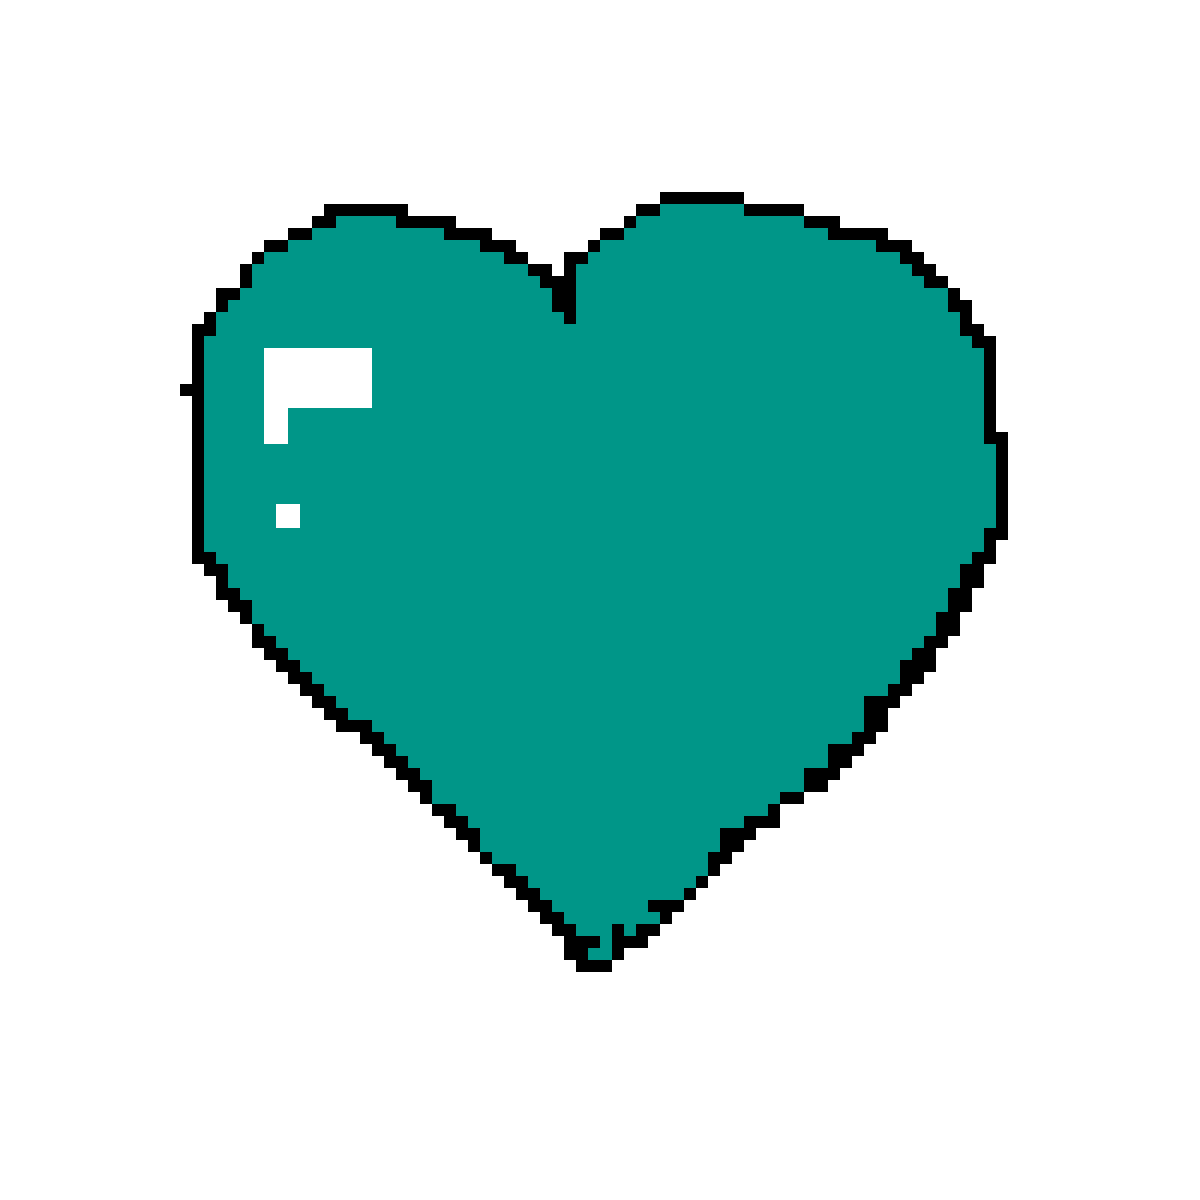 Mint heart png. Pixilart the by anonymous